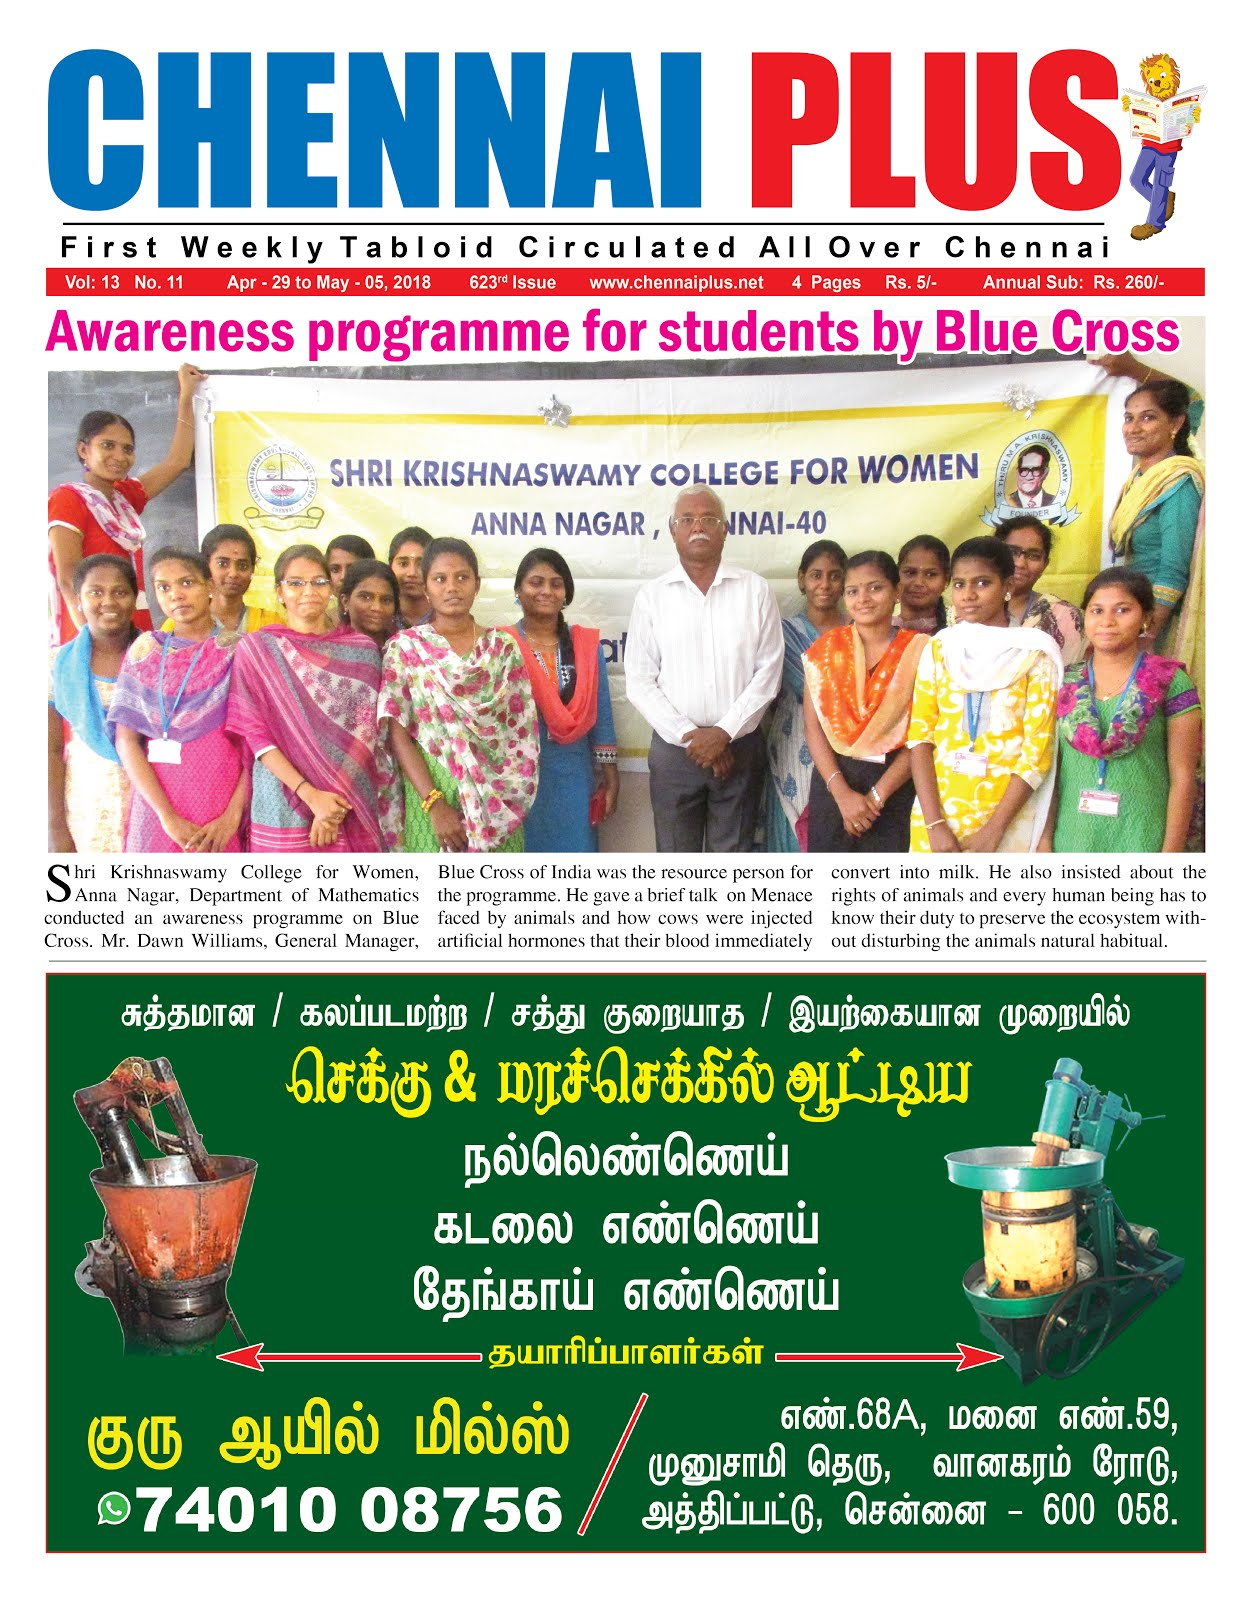 Chennai Plus_29.04.2018_Issue